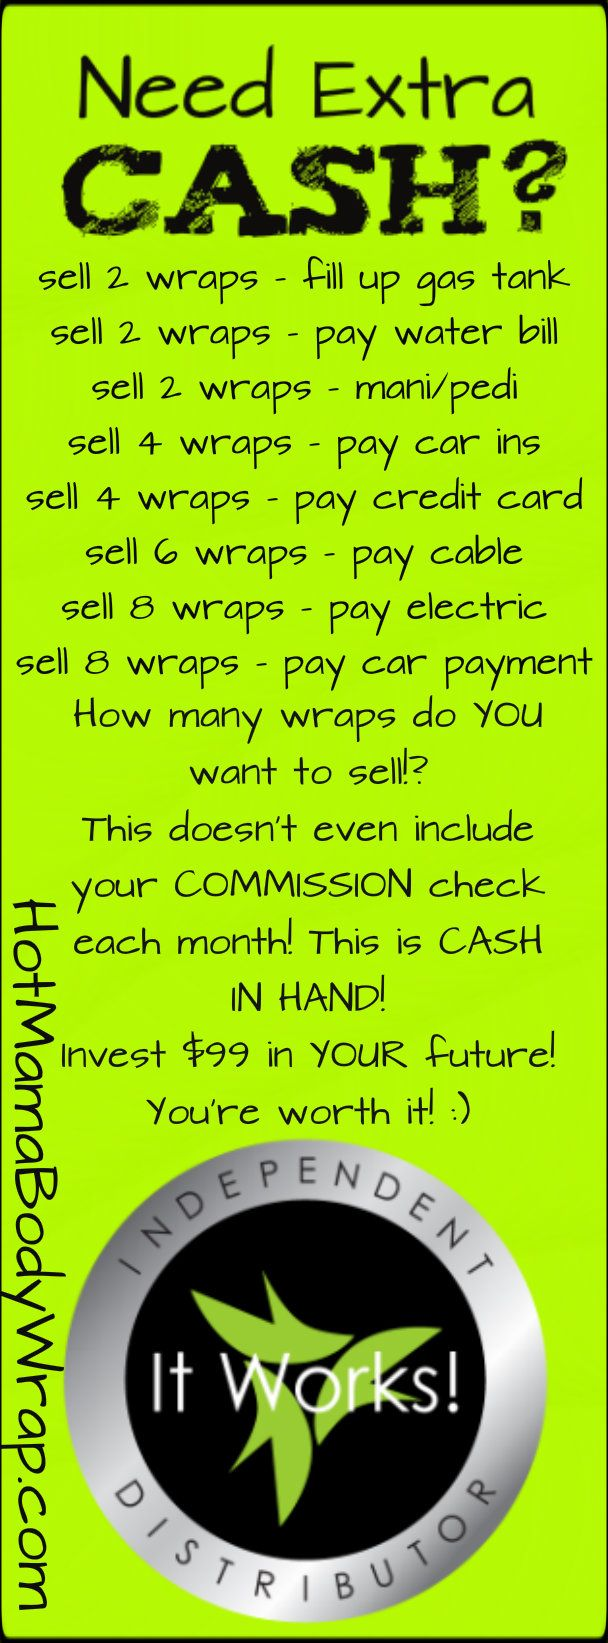 Did you know you can SELL that Crazy Wrap Thing and make extra money? Maybe even make a CAREER out of it! Want to stay home with your kids? Quit working for someone else? Work for yourself? When you join the WRAPPERS WITH SWAGGER team, you get discounted product, the rights to sell, and a TEAM that wants you to succeed! Let me help you!  Join the TEAM by contacting me.